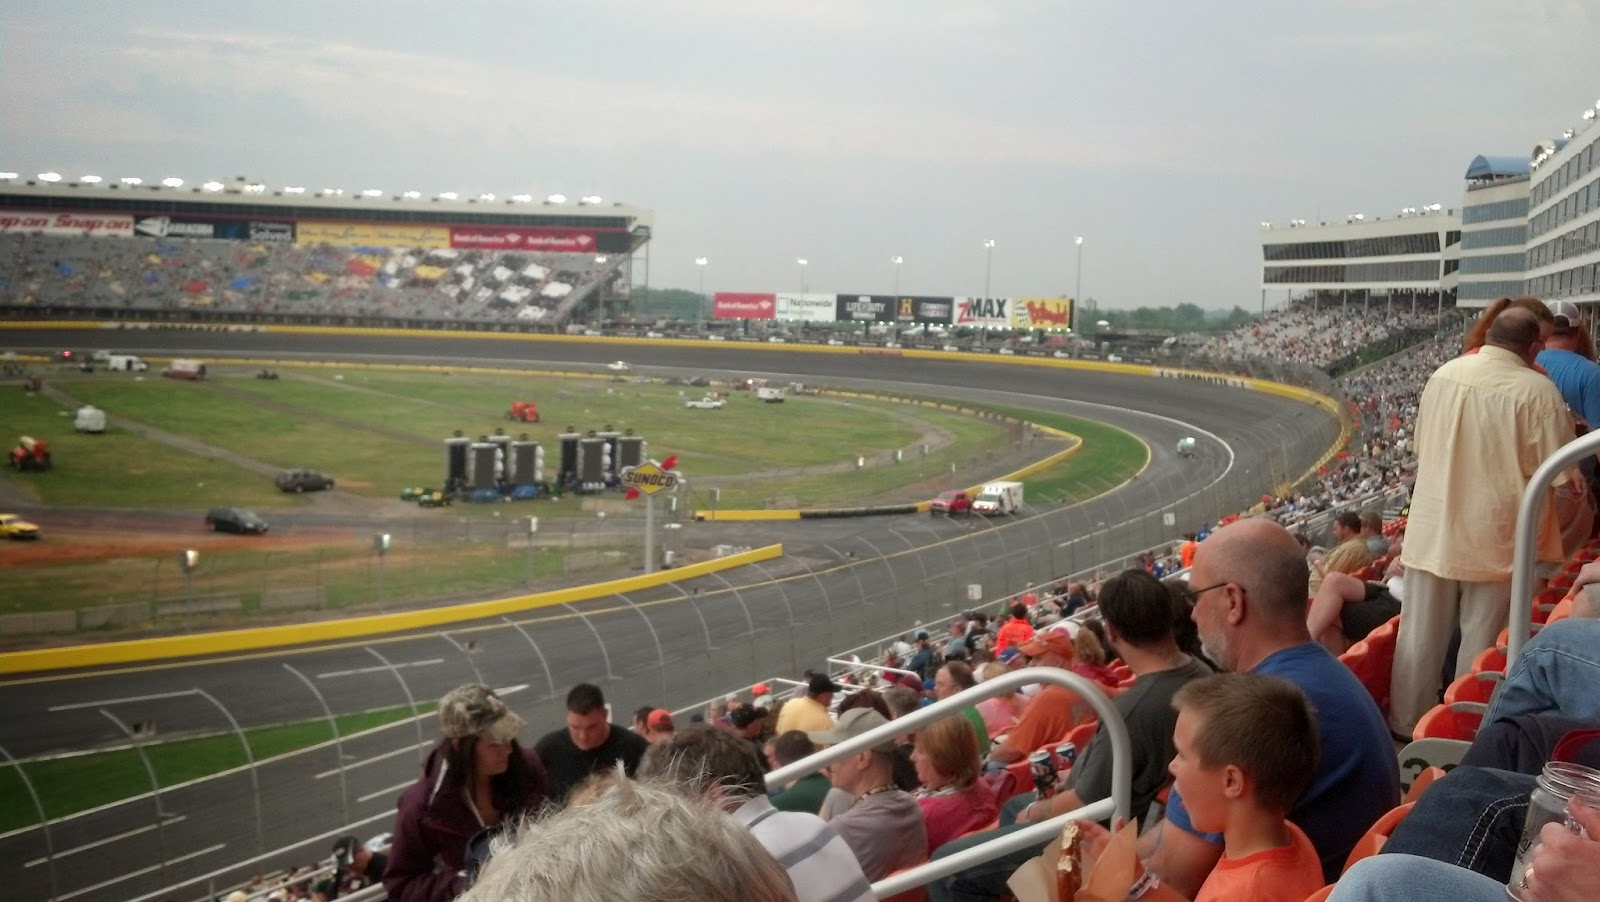 John becky 39 s excellent adventure may 19 2013 for Charlotte motor speedway ticket office